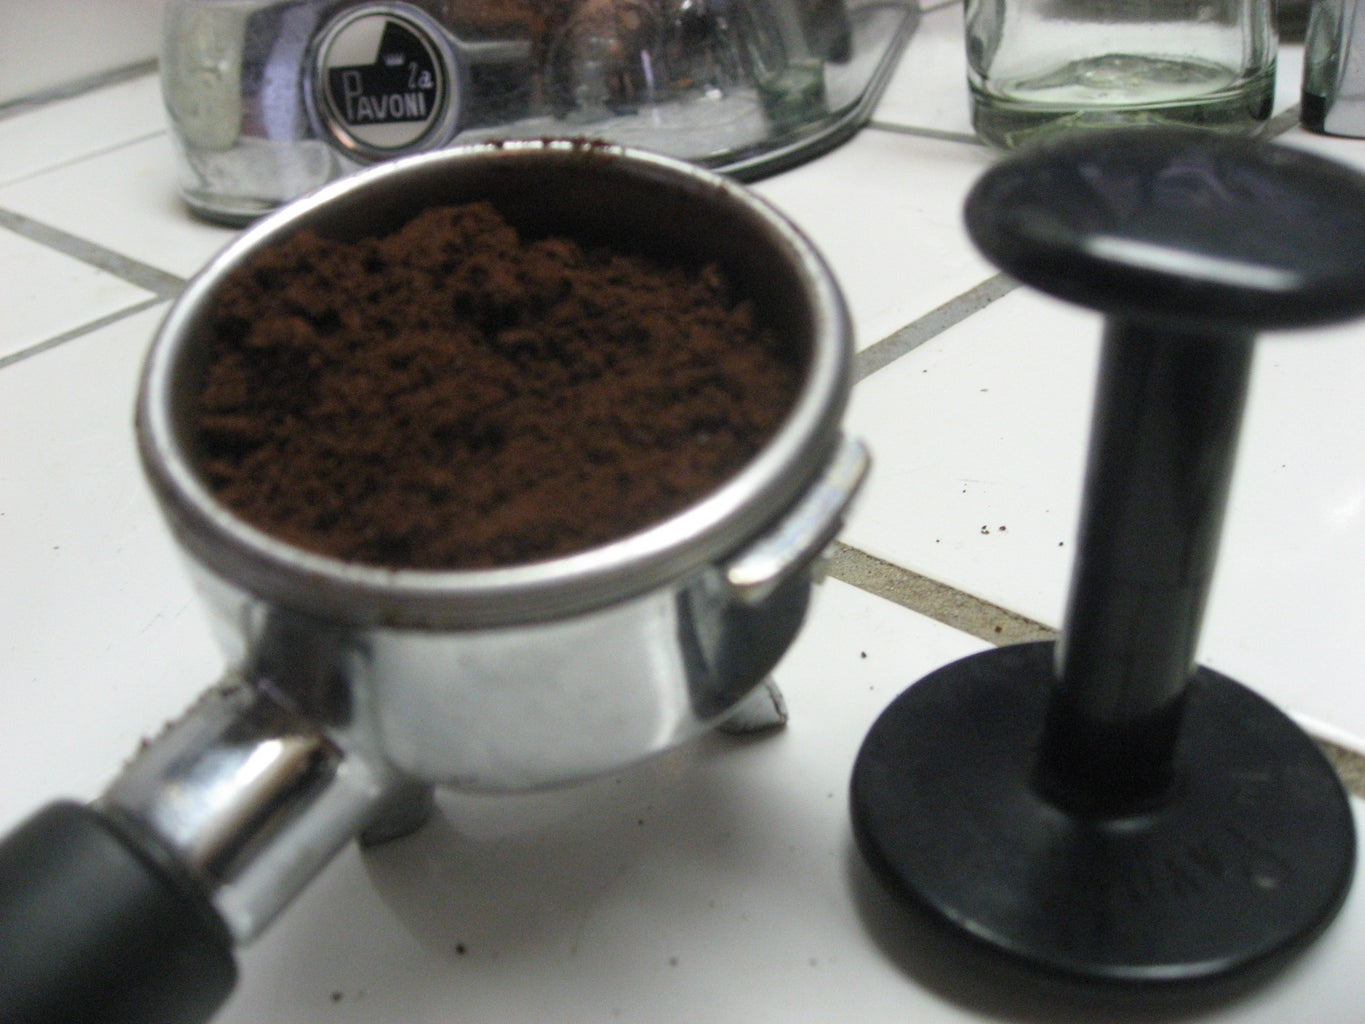 Grinding, Tamping, Pouring.